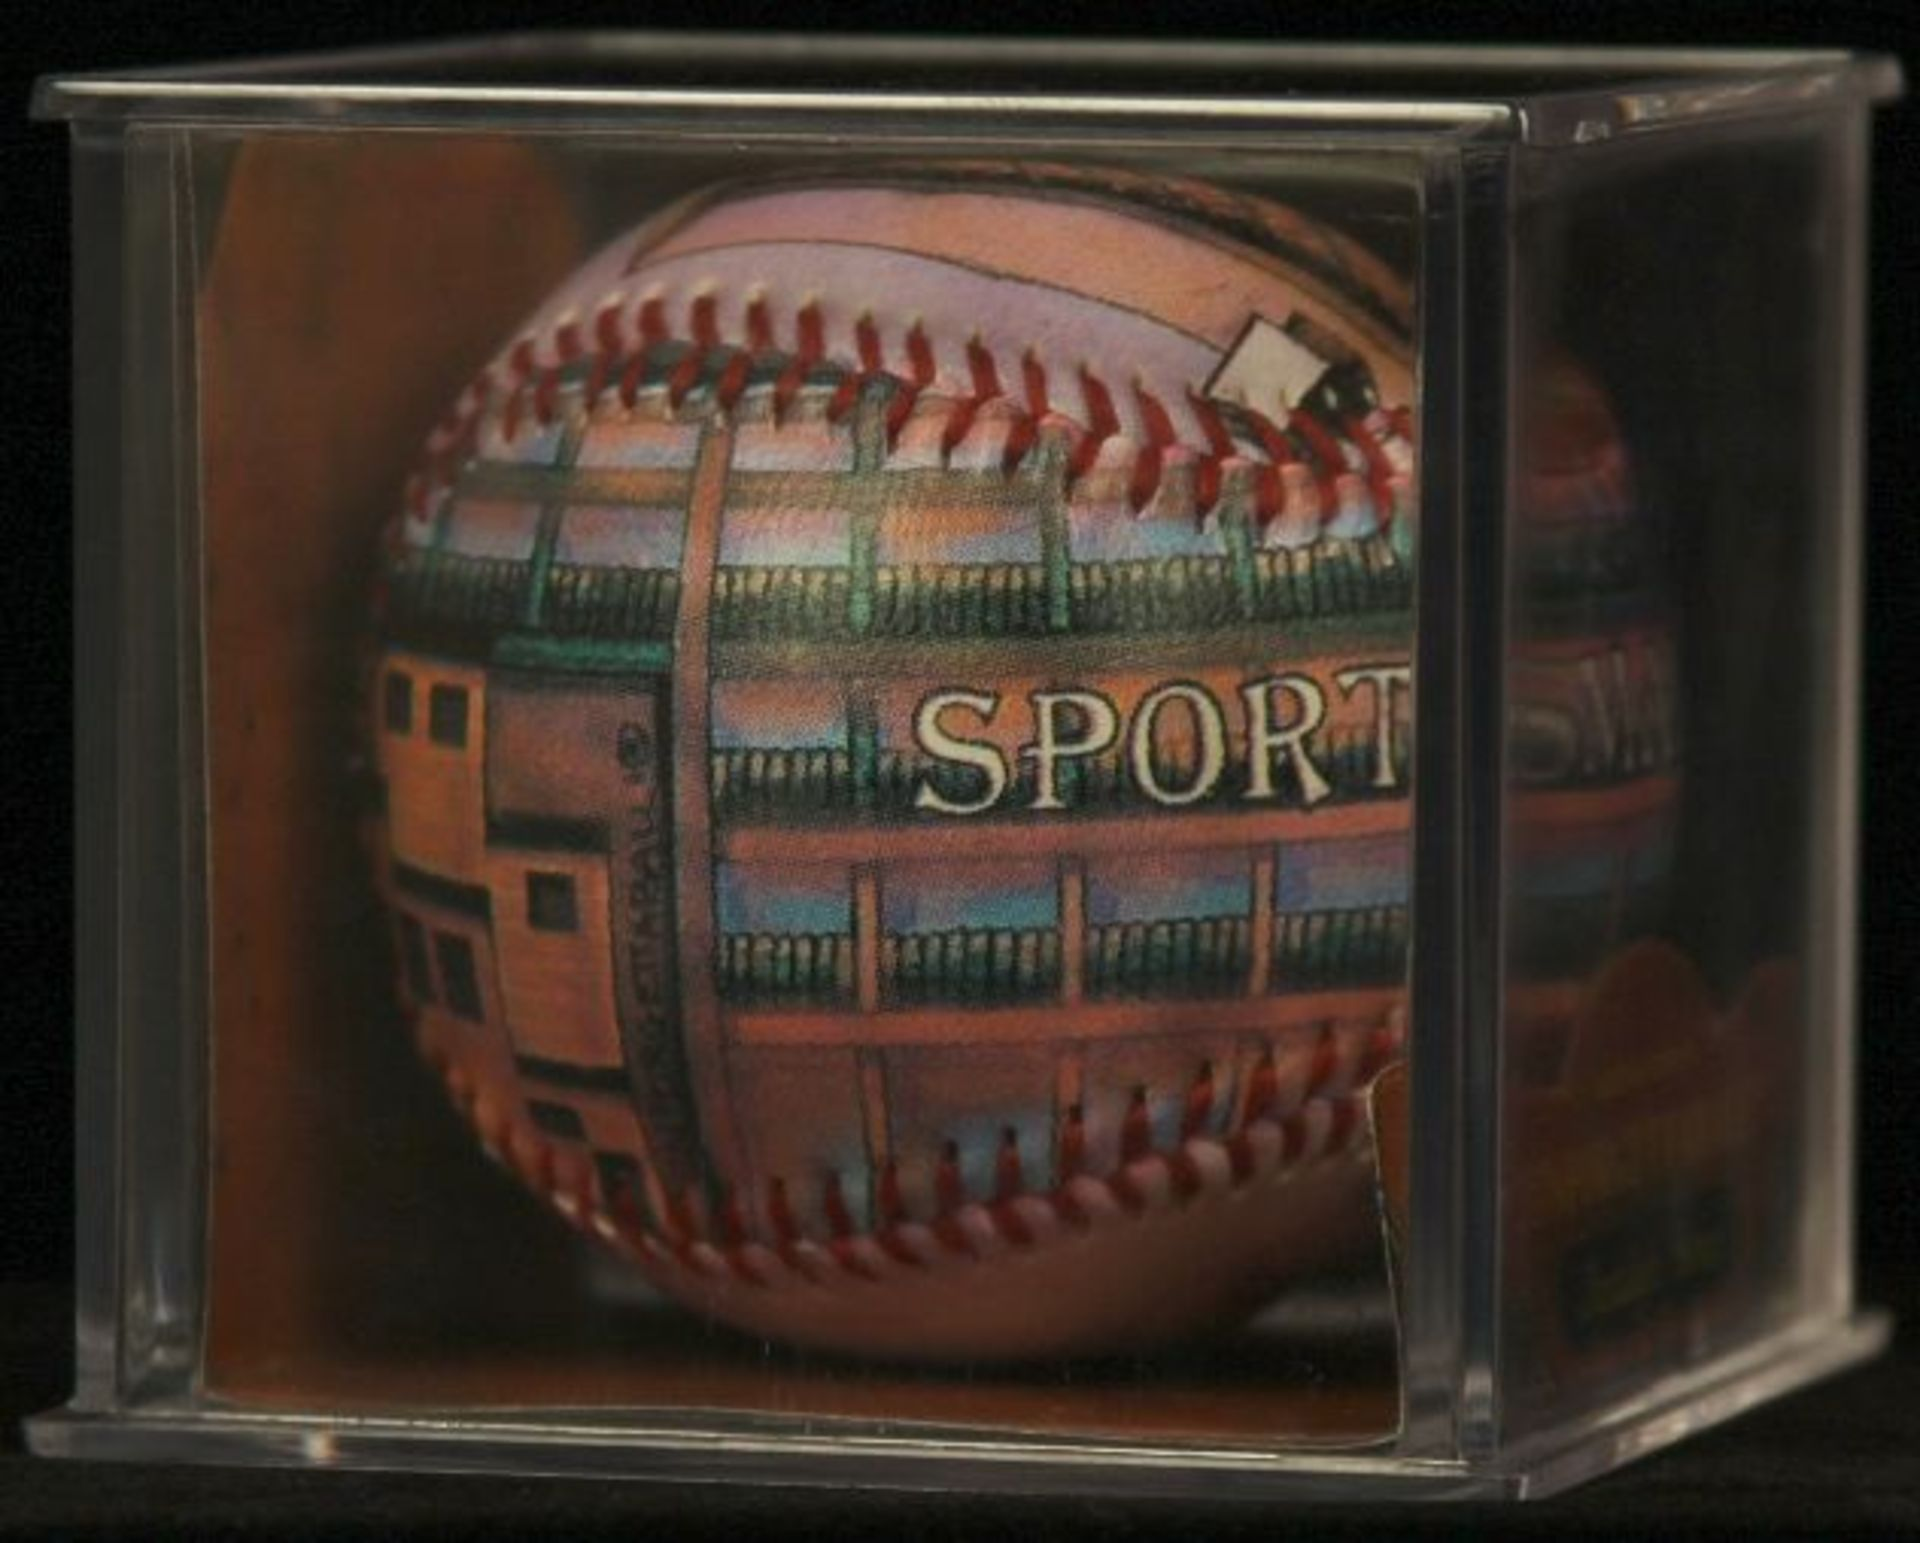 "Unforgettaball! ""Sportsman's Park"" Nostalgia Series Collectable Baseball - Image 2 of 4"